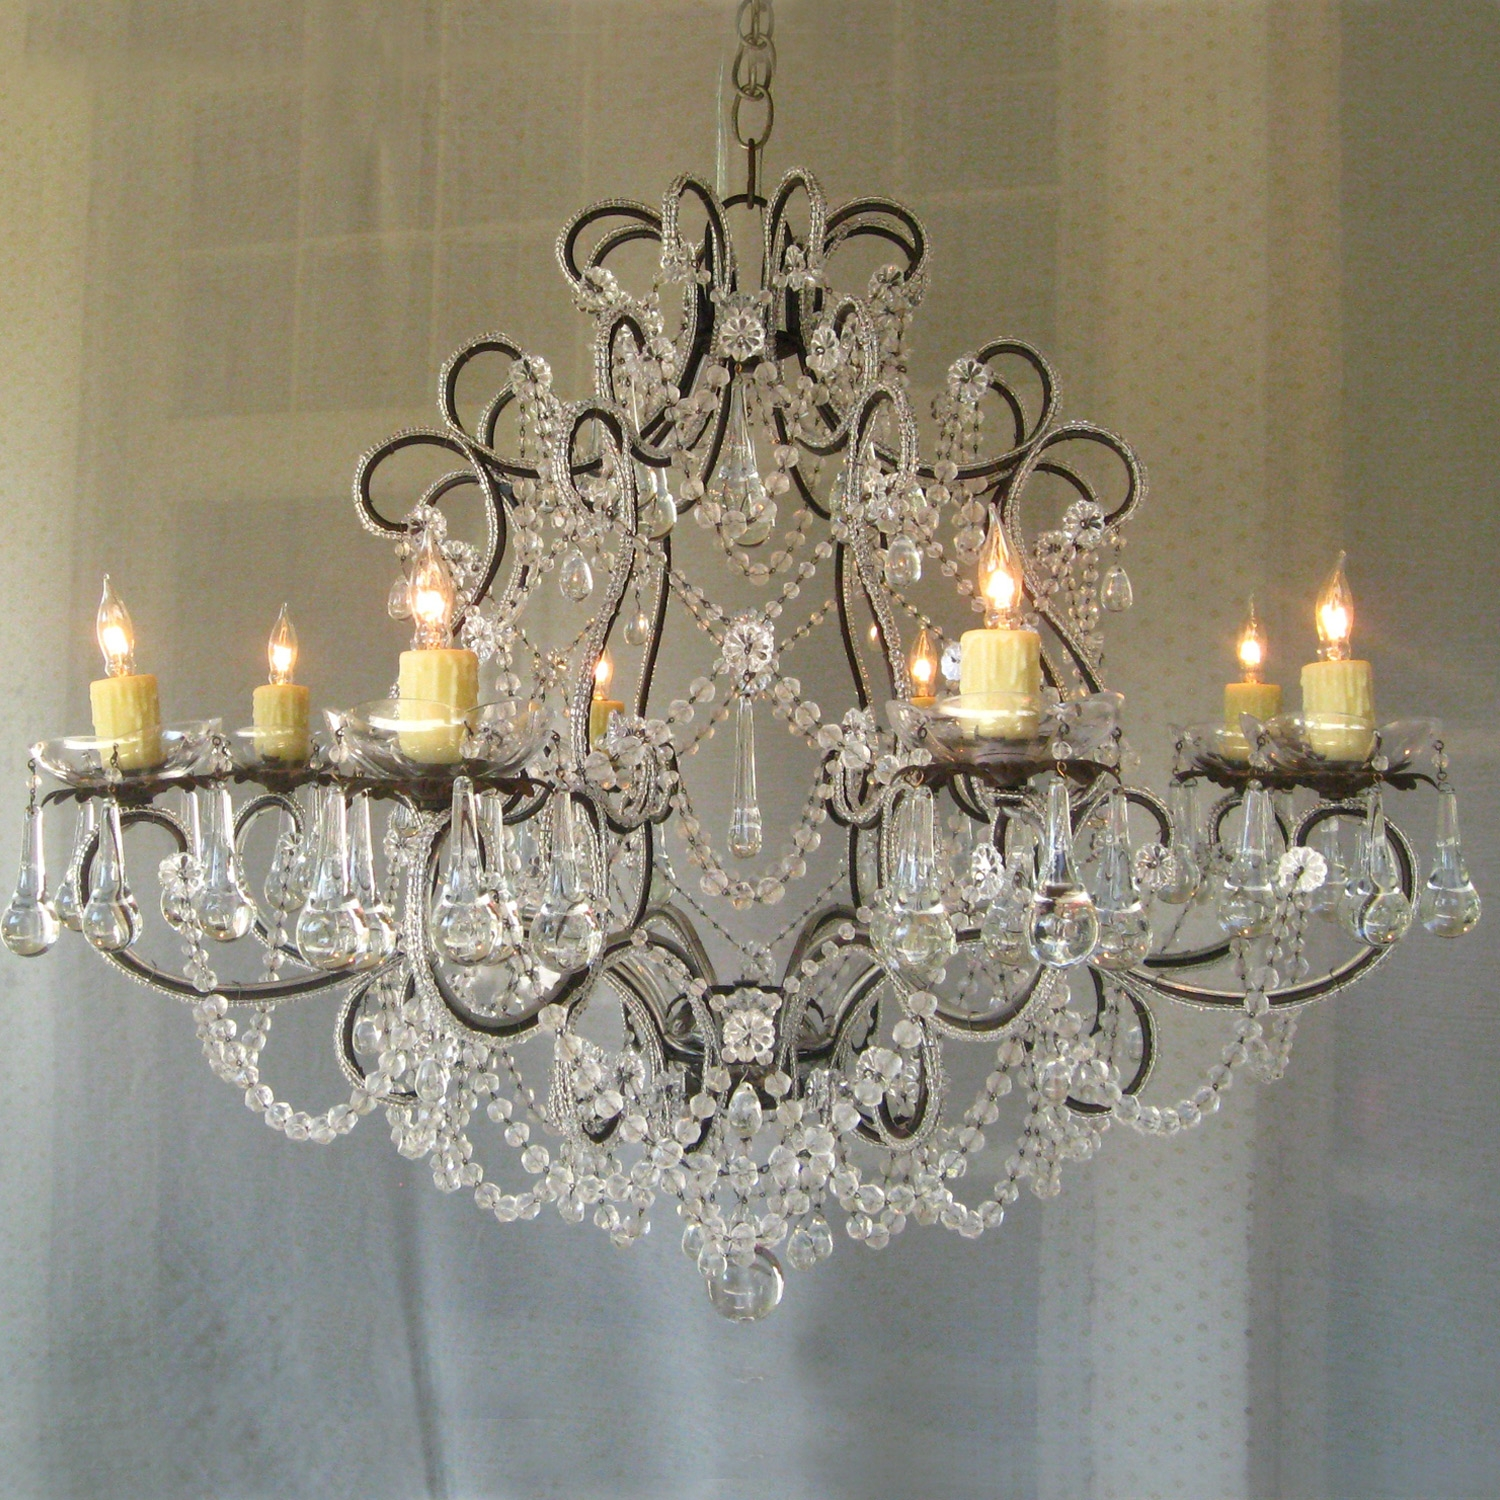 Shab Chic Lighting Style Chandeliers Table Lamps Wall Regarding Shabby Chic Chandeliers (View 3 of 15)